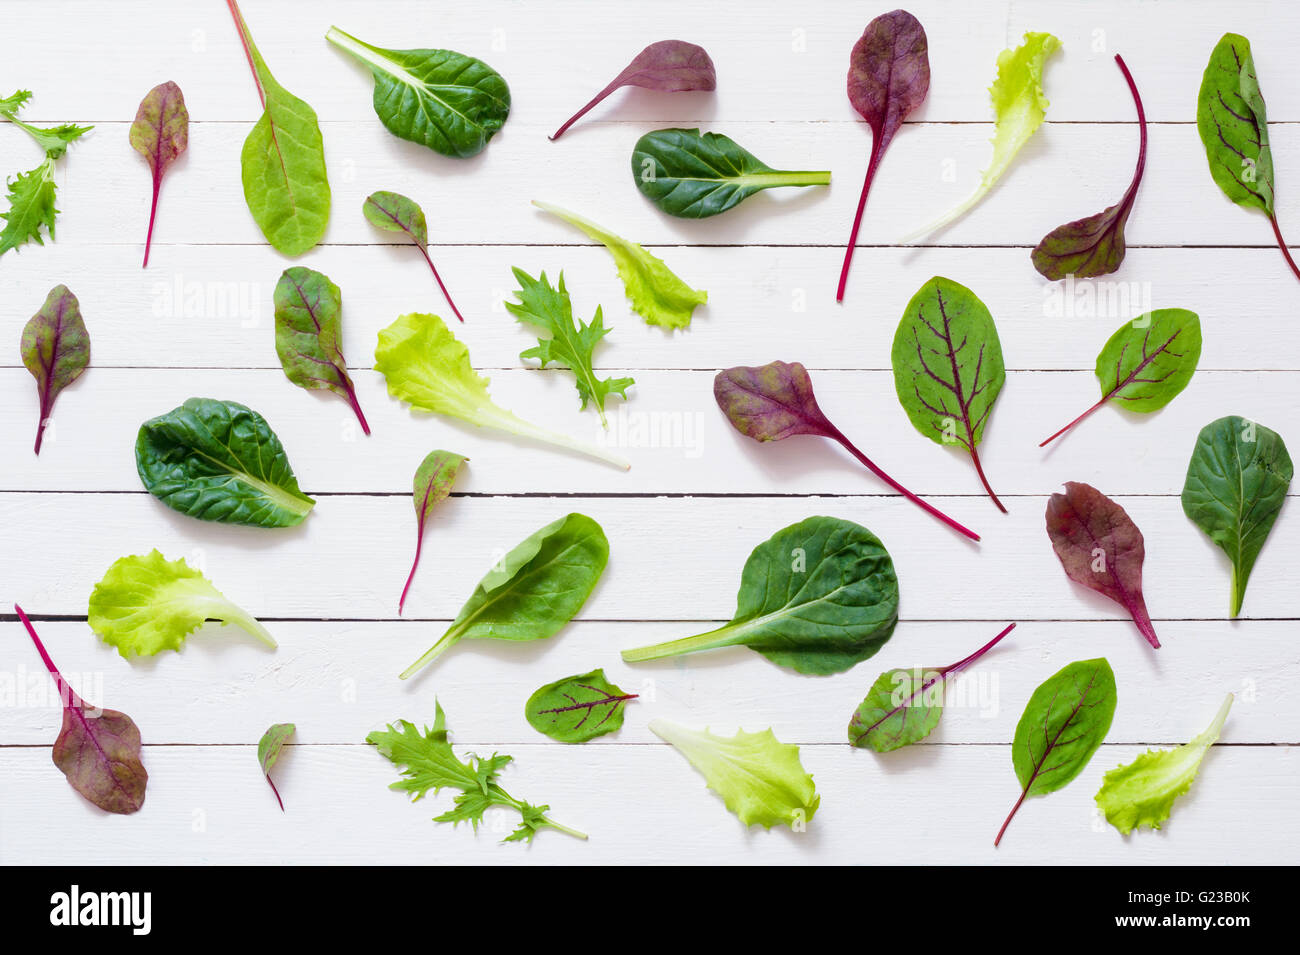 Pattern design of various salad leaves on white wooden background / Flat lay green salad leaves on white background - Stock Image